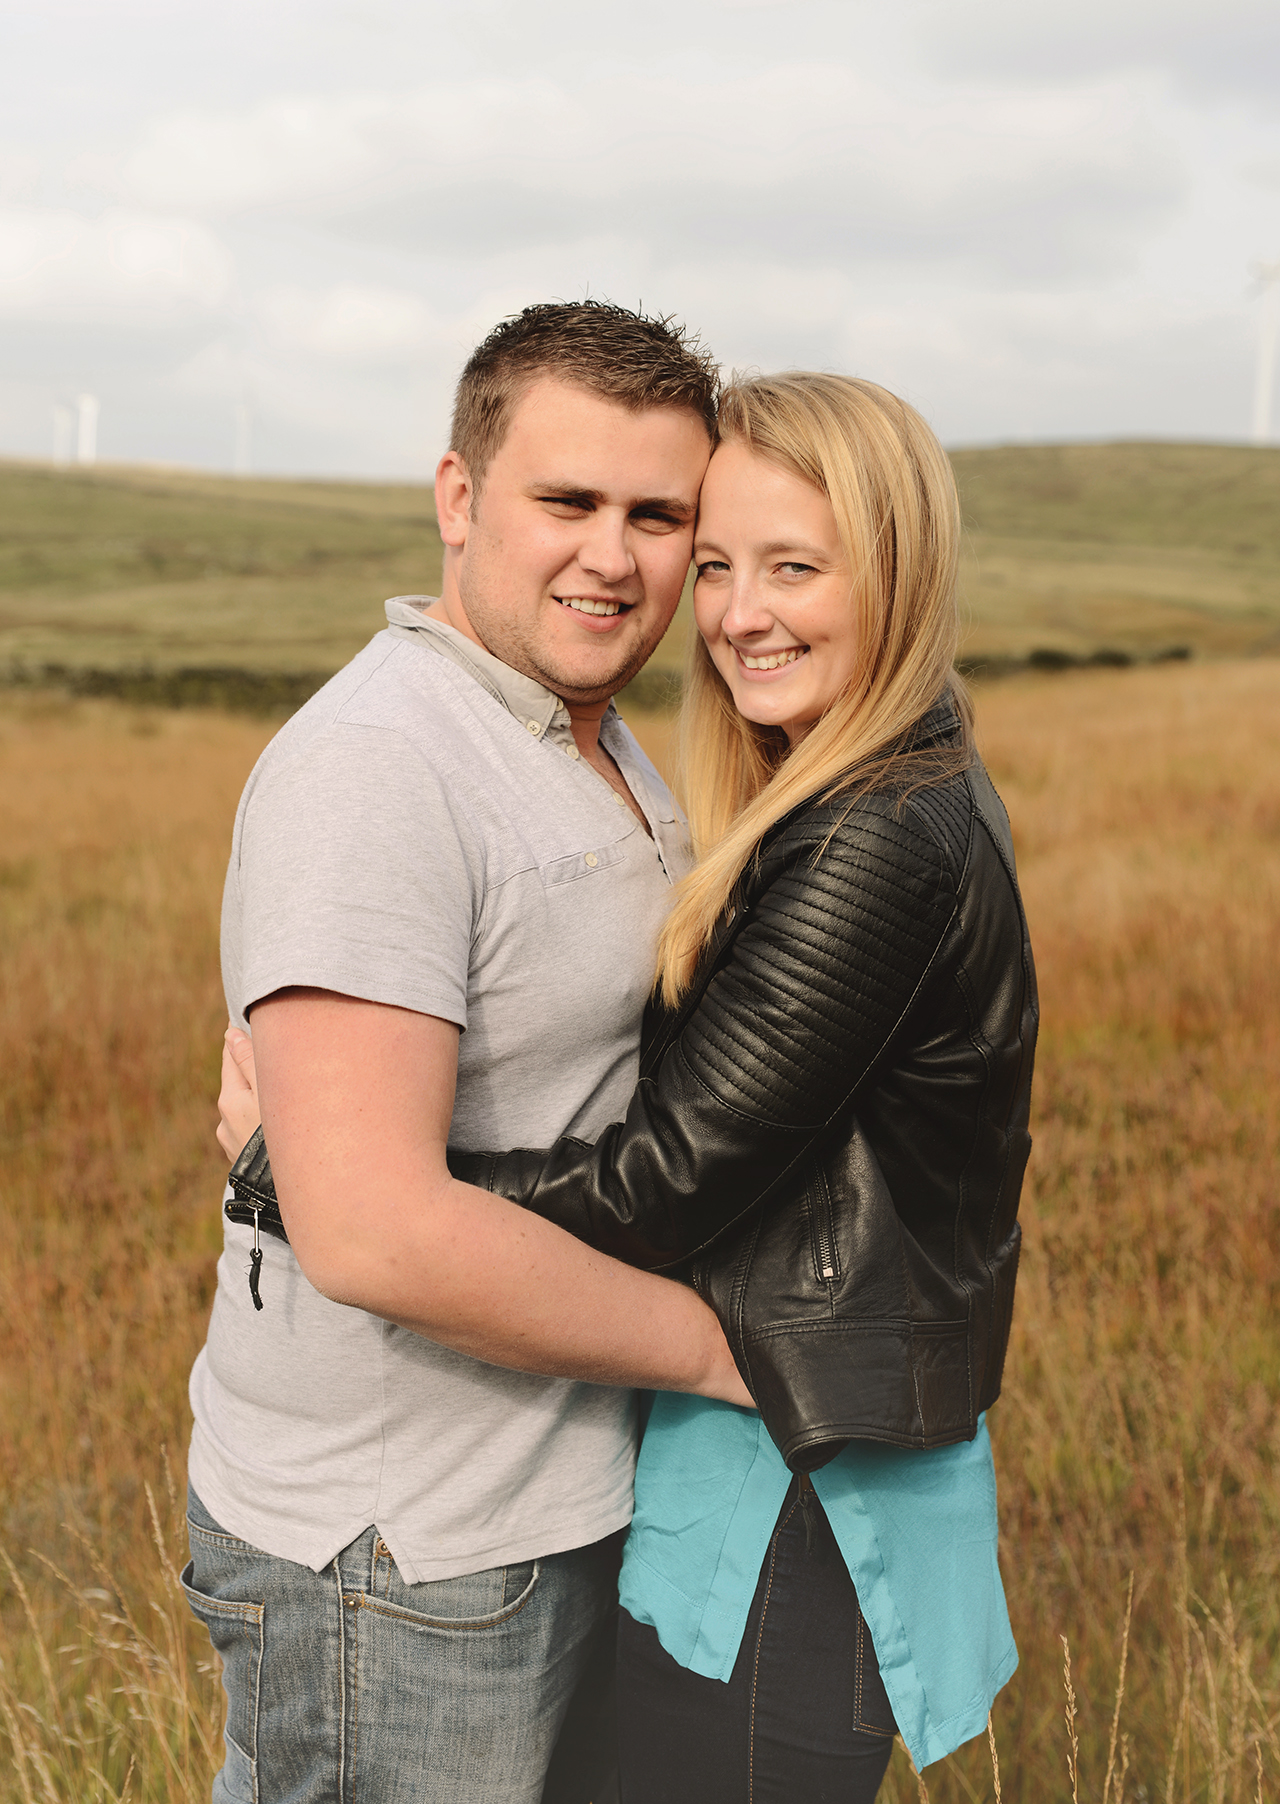 photoshoot-location-engagement-photography-rochdale.jpg